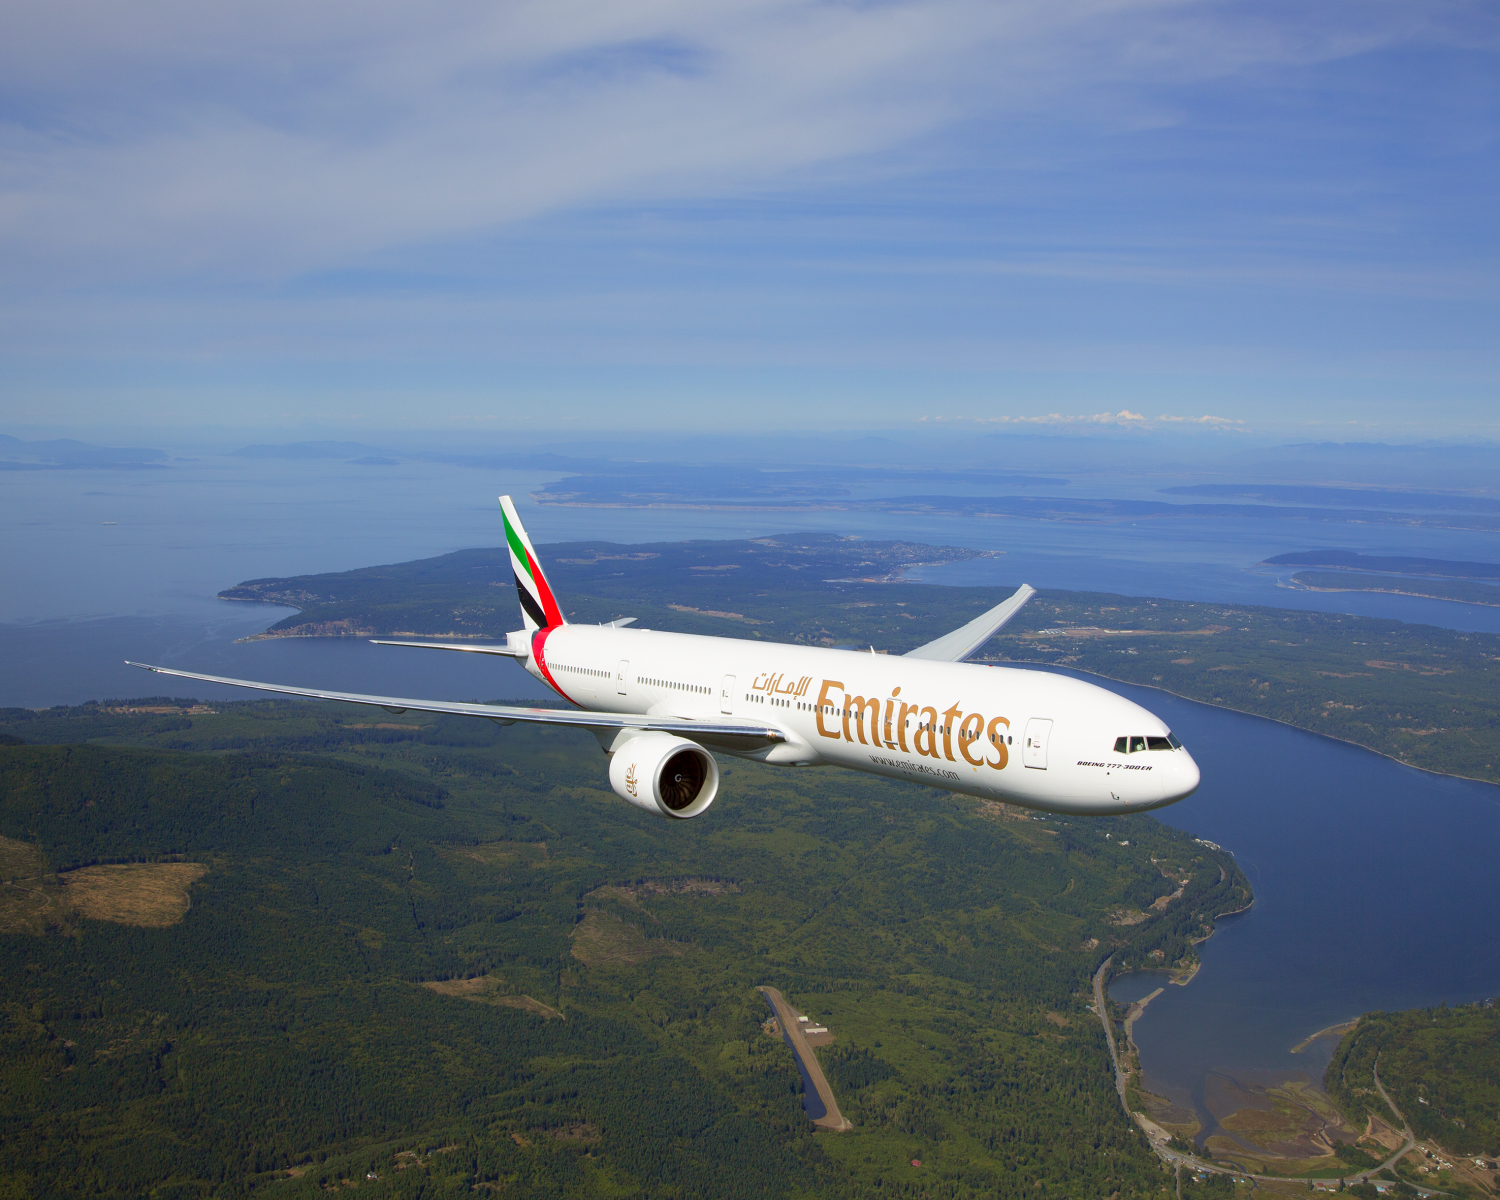 Emirates adds Birmingham, Cebu and Houston, taking its network to 74 cities